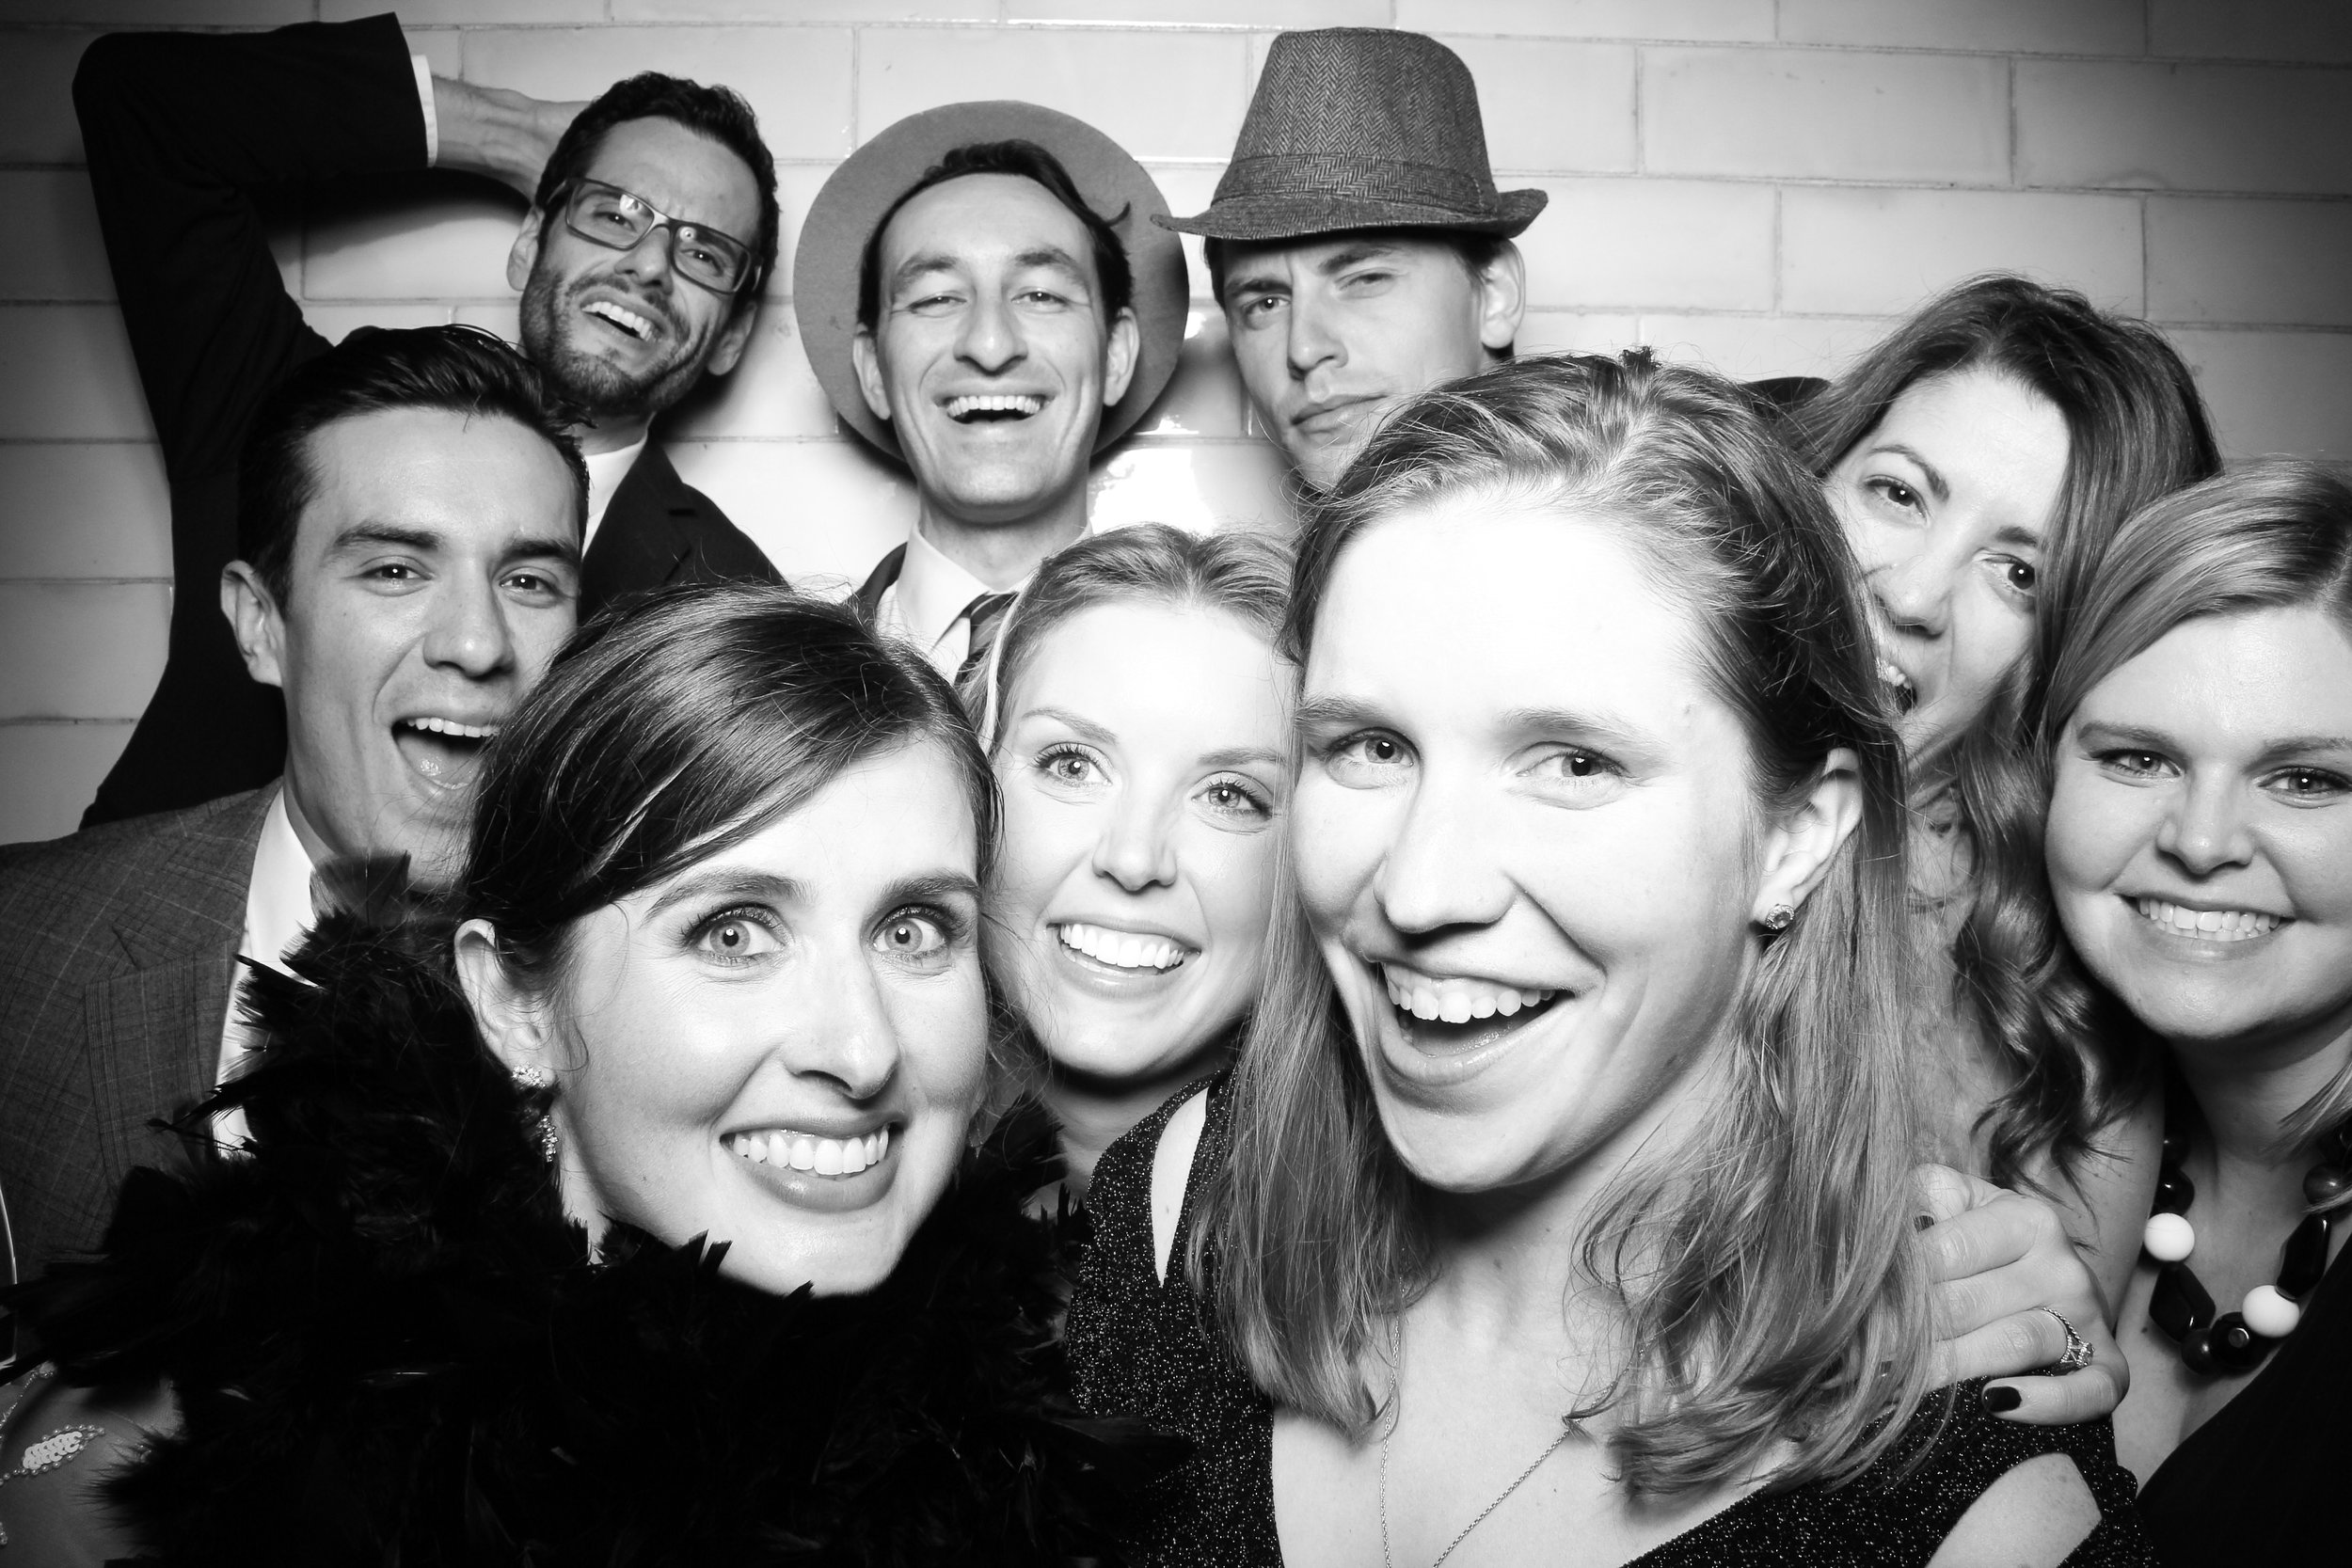 Firehouse_Chicago_Edgewater_Wedding_Reception_Photo_Booth_09.jpg